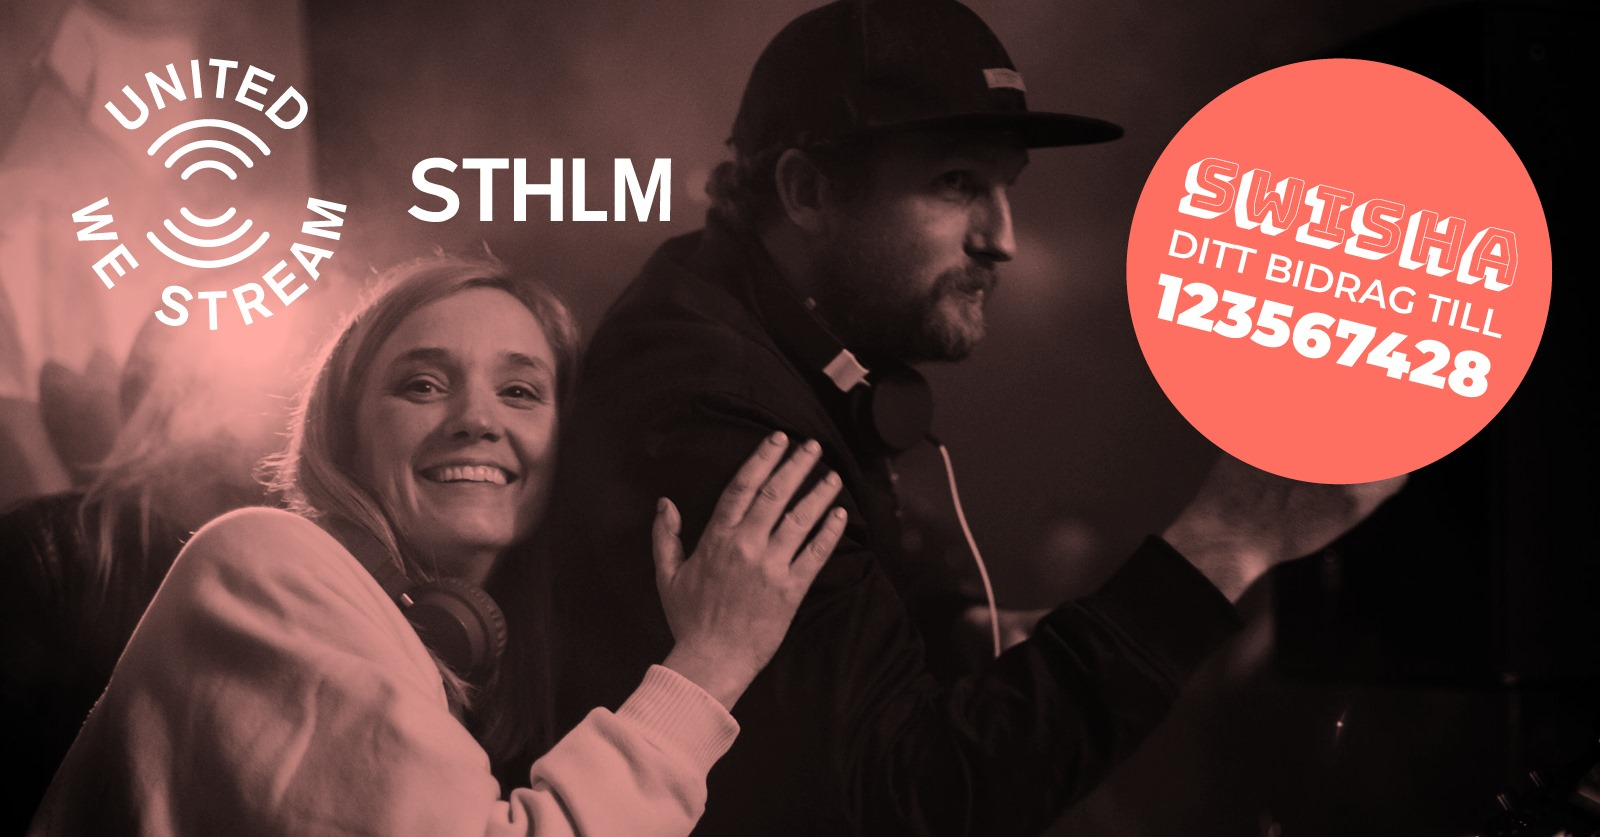 United We Stream Sthlm